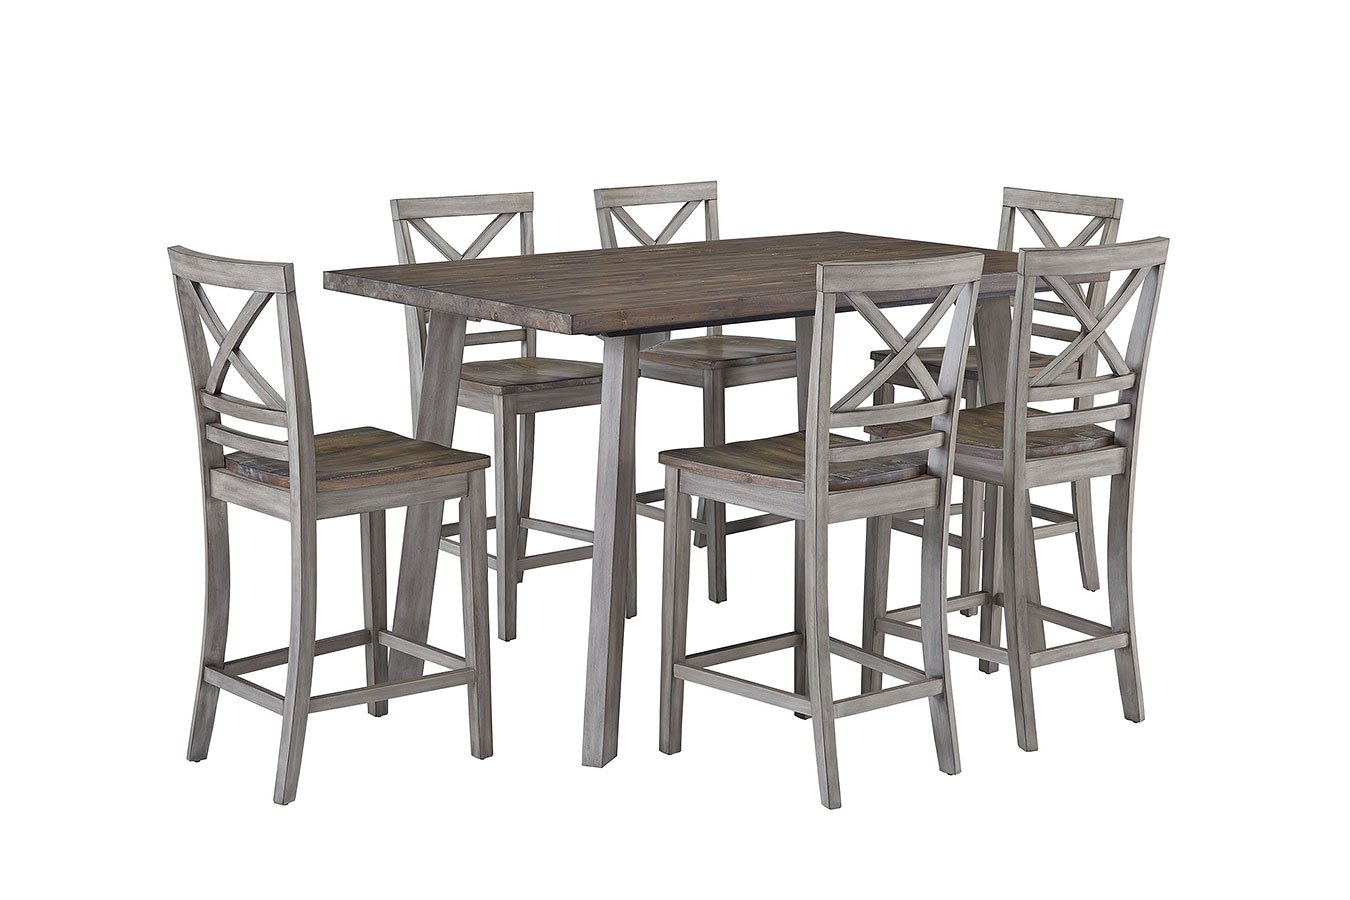 Fairhaven 5 Piece Counter Height Dining Set Standard